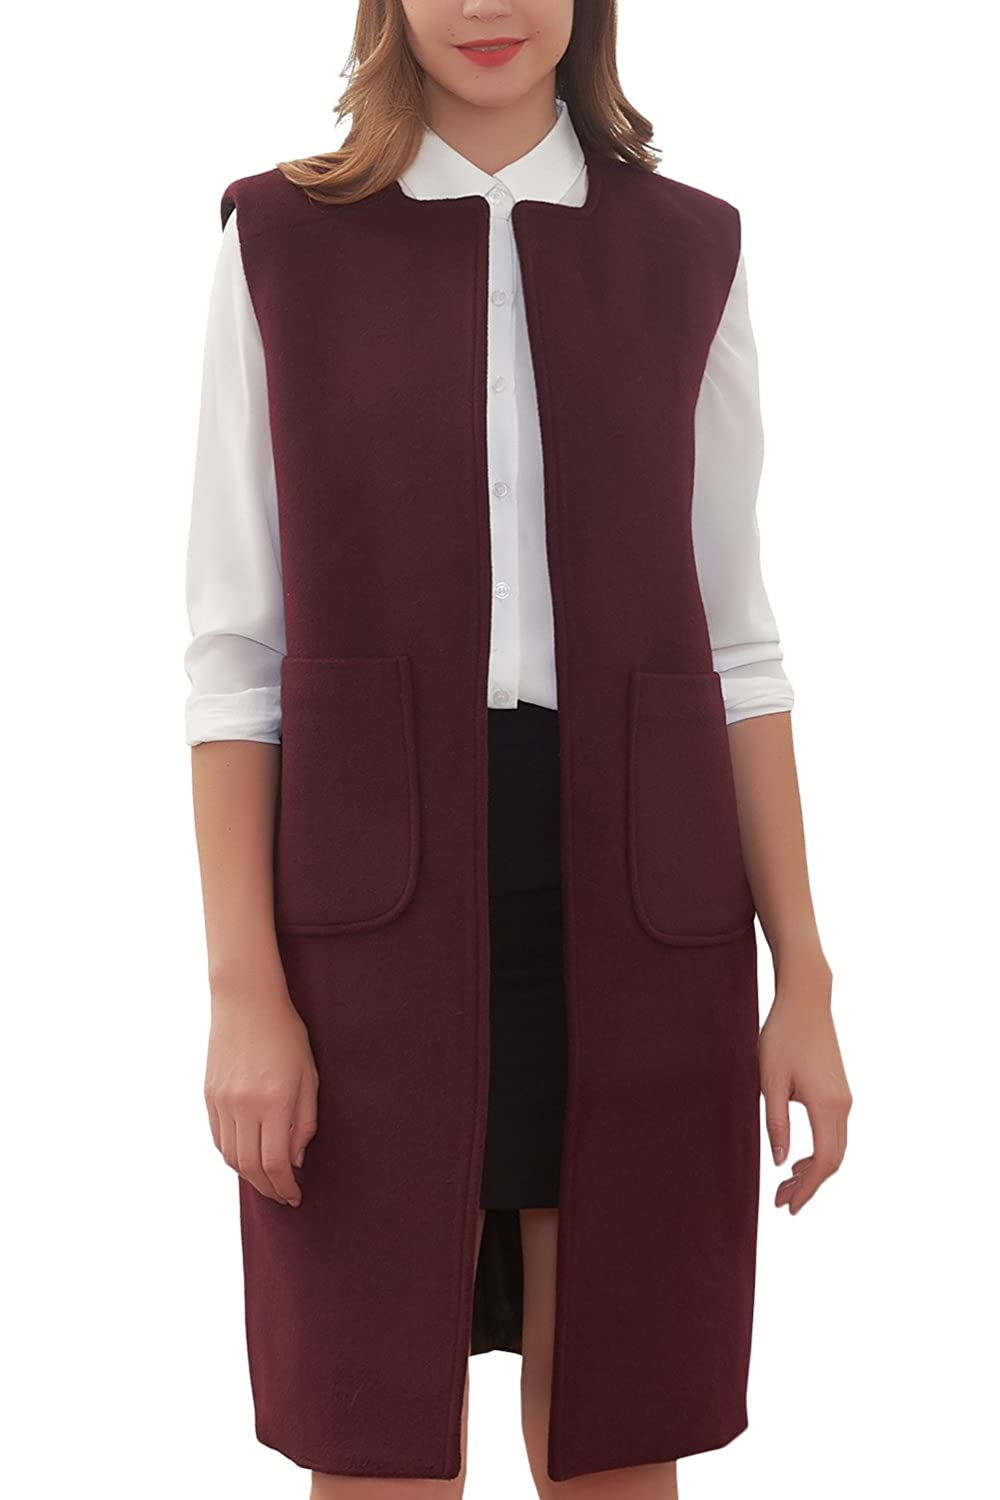 Hanayome Women's Long Jacket Trench Lapel Woolen Coat Sleeveless Dress Vest Coat MI28-A1